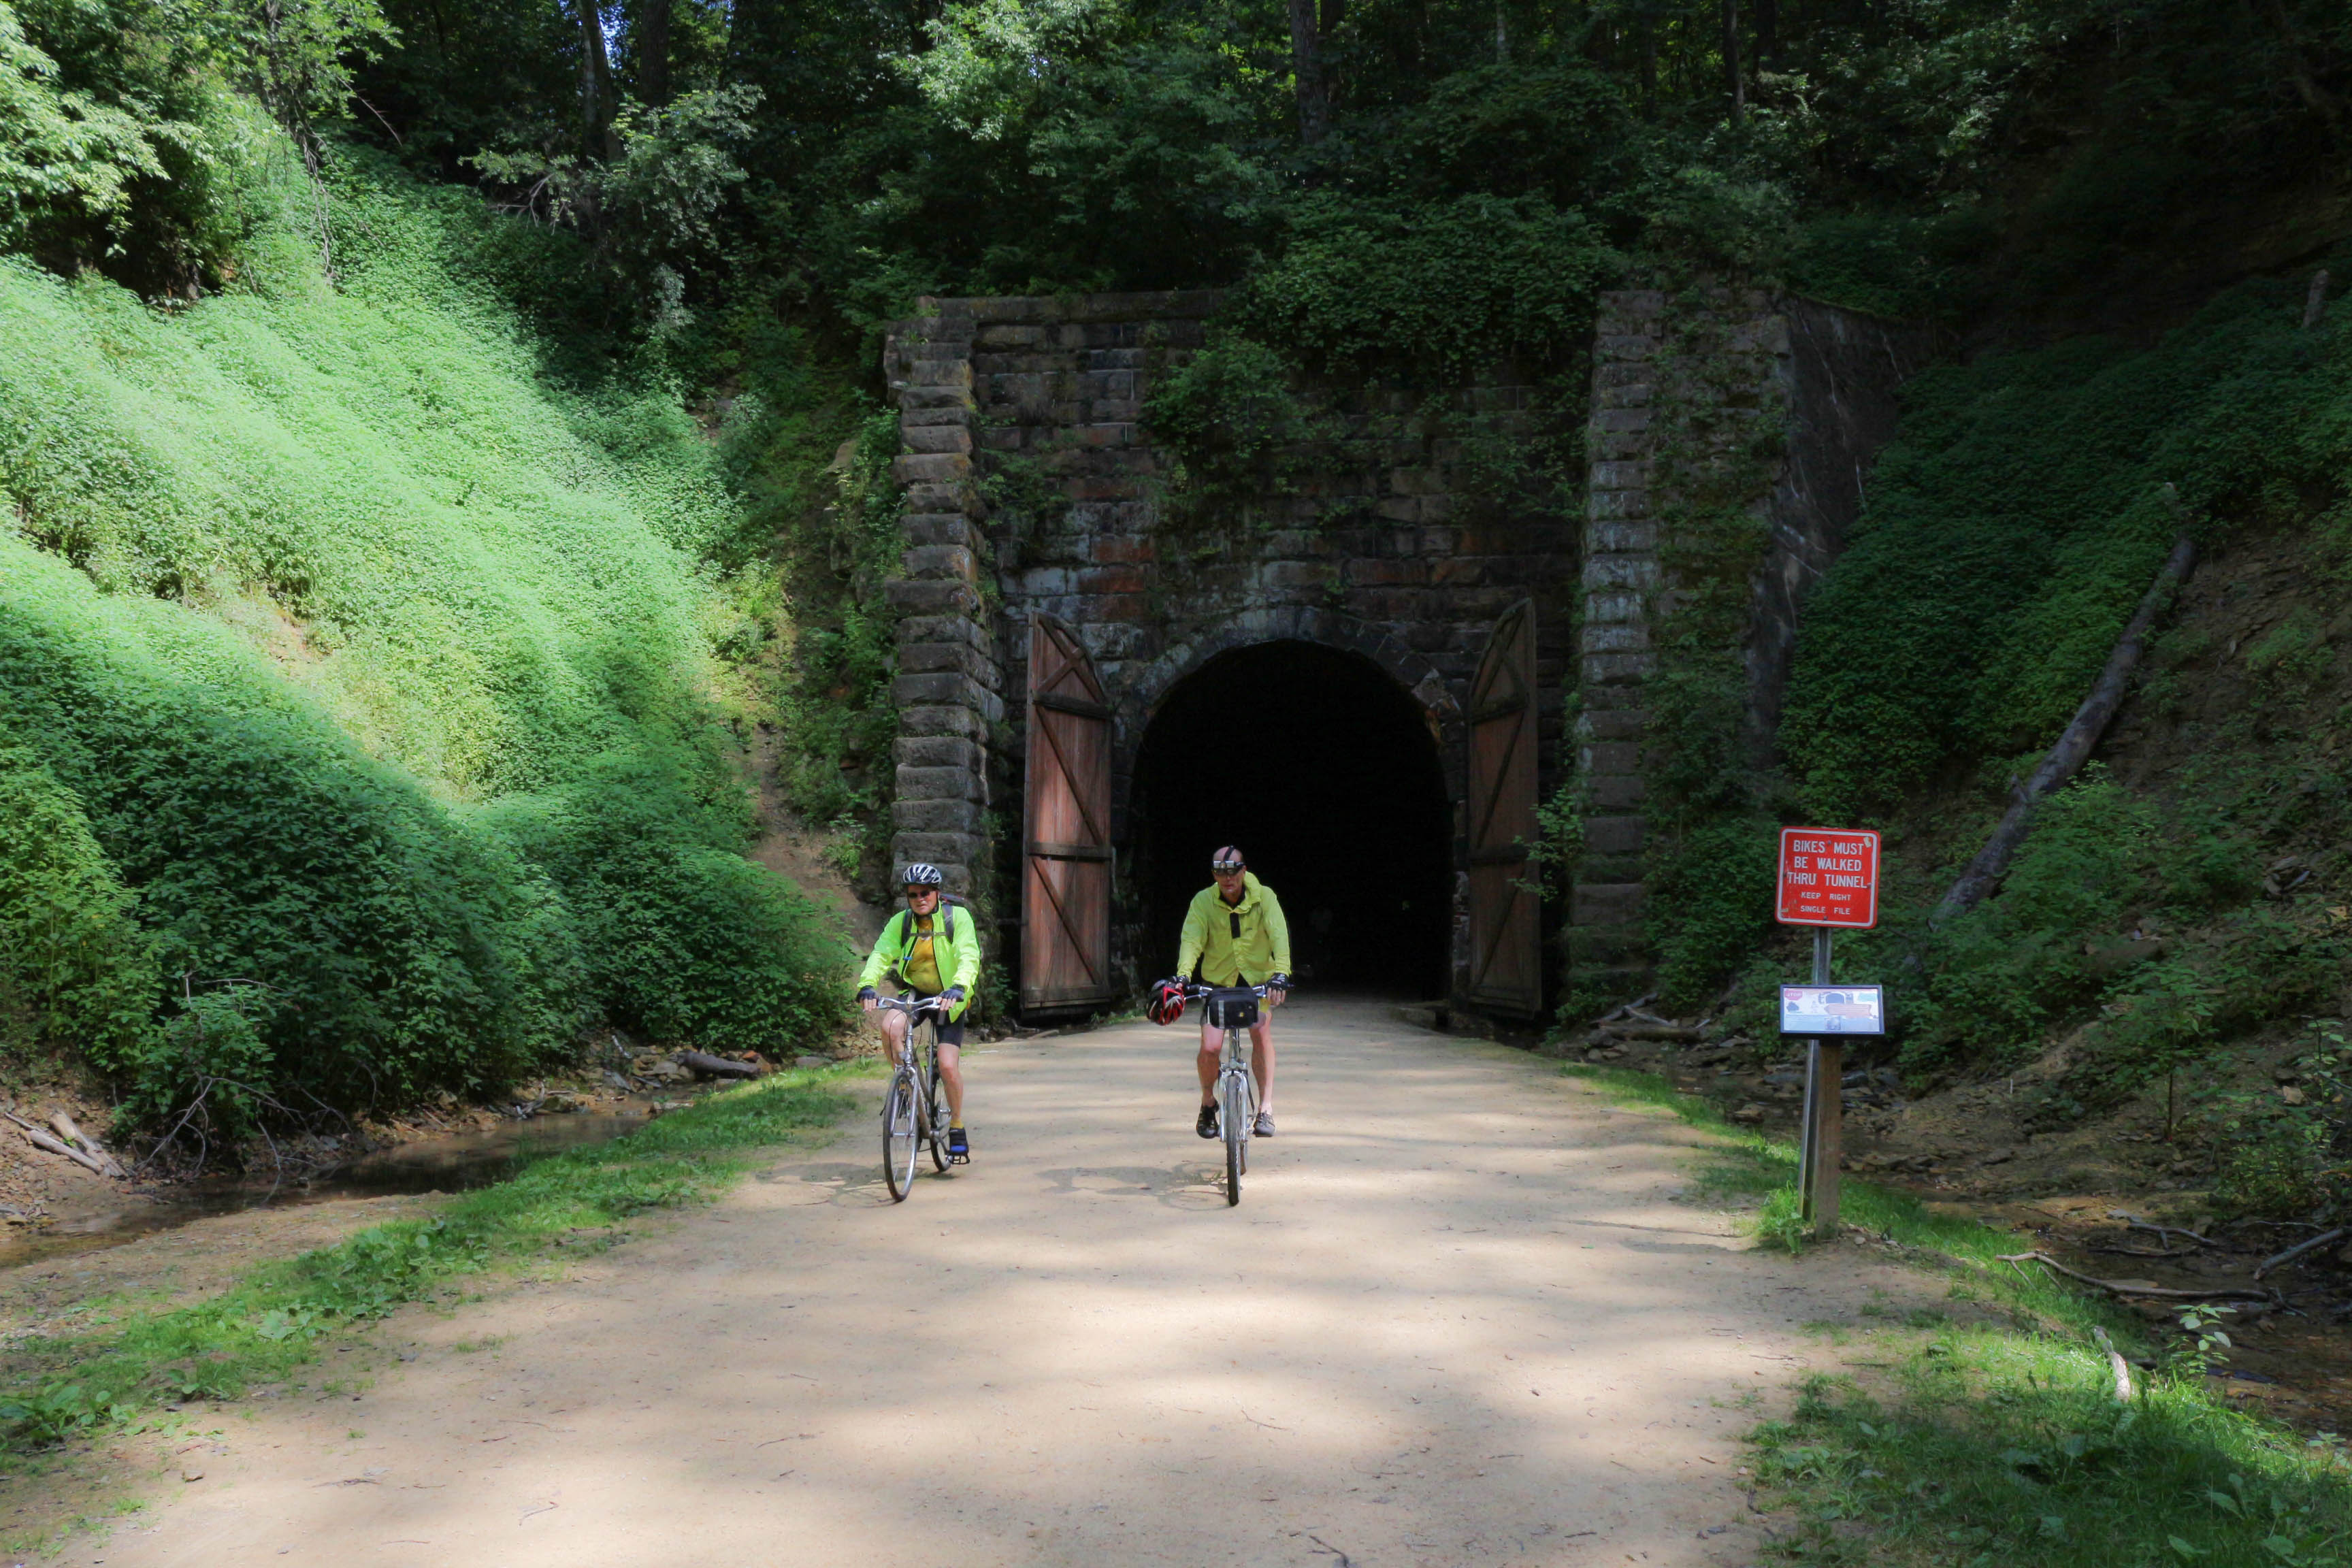 Bikers in Tunnel